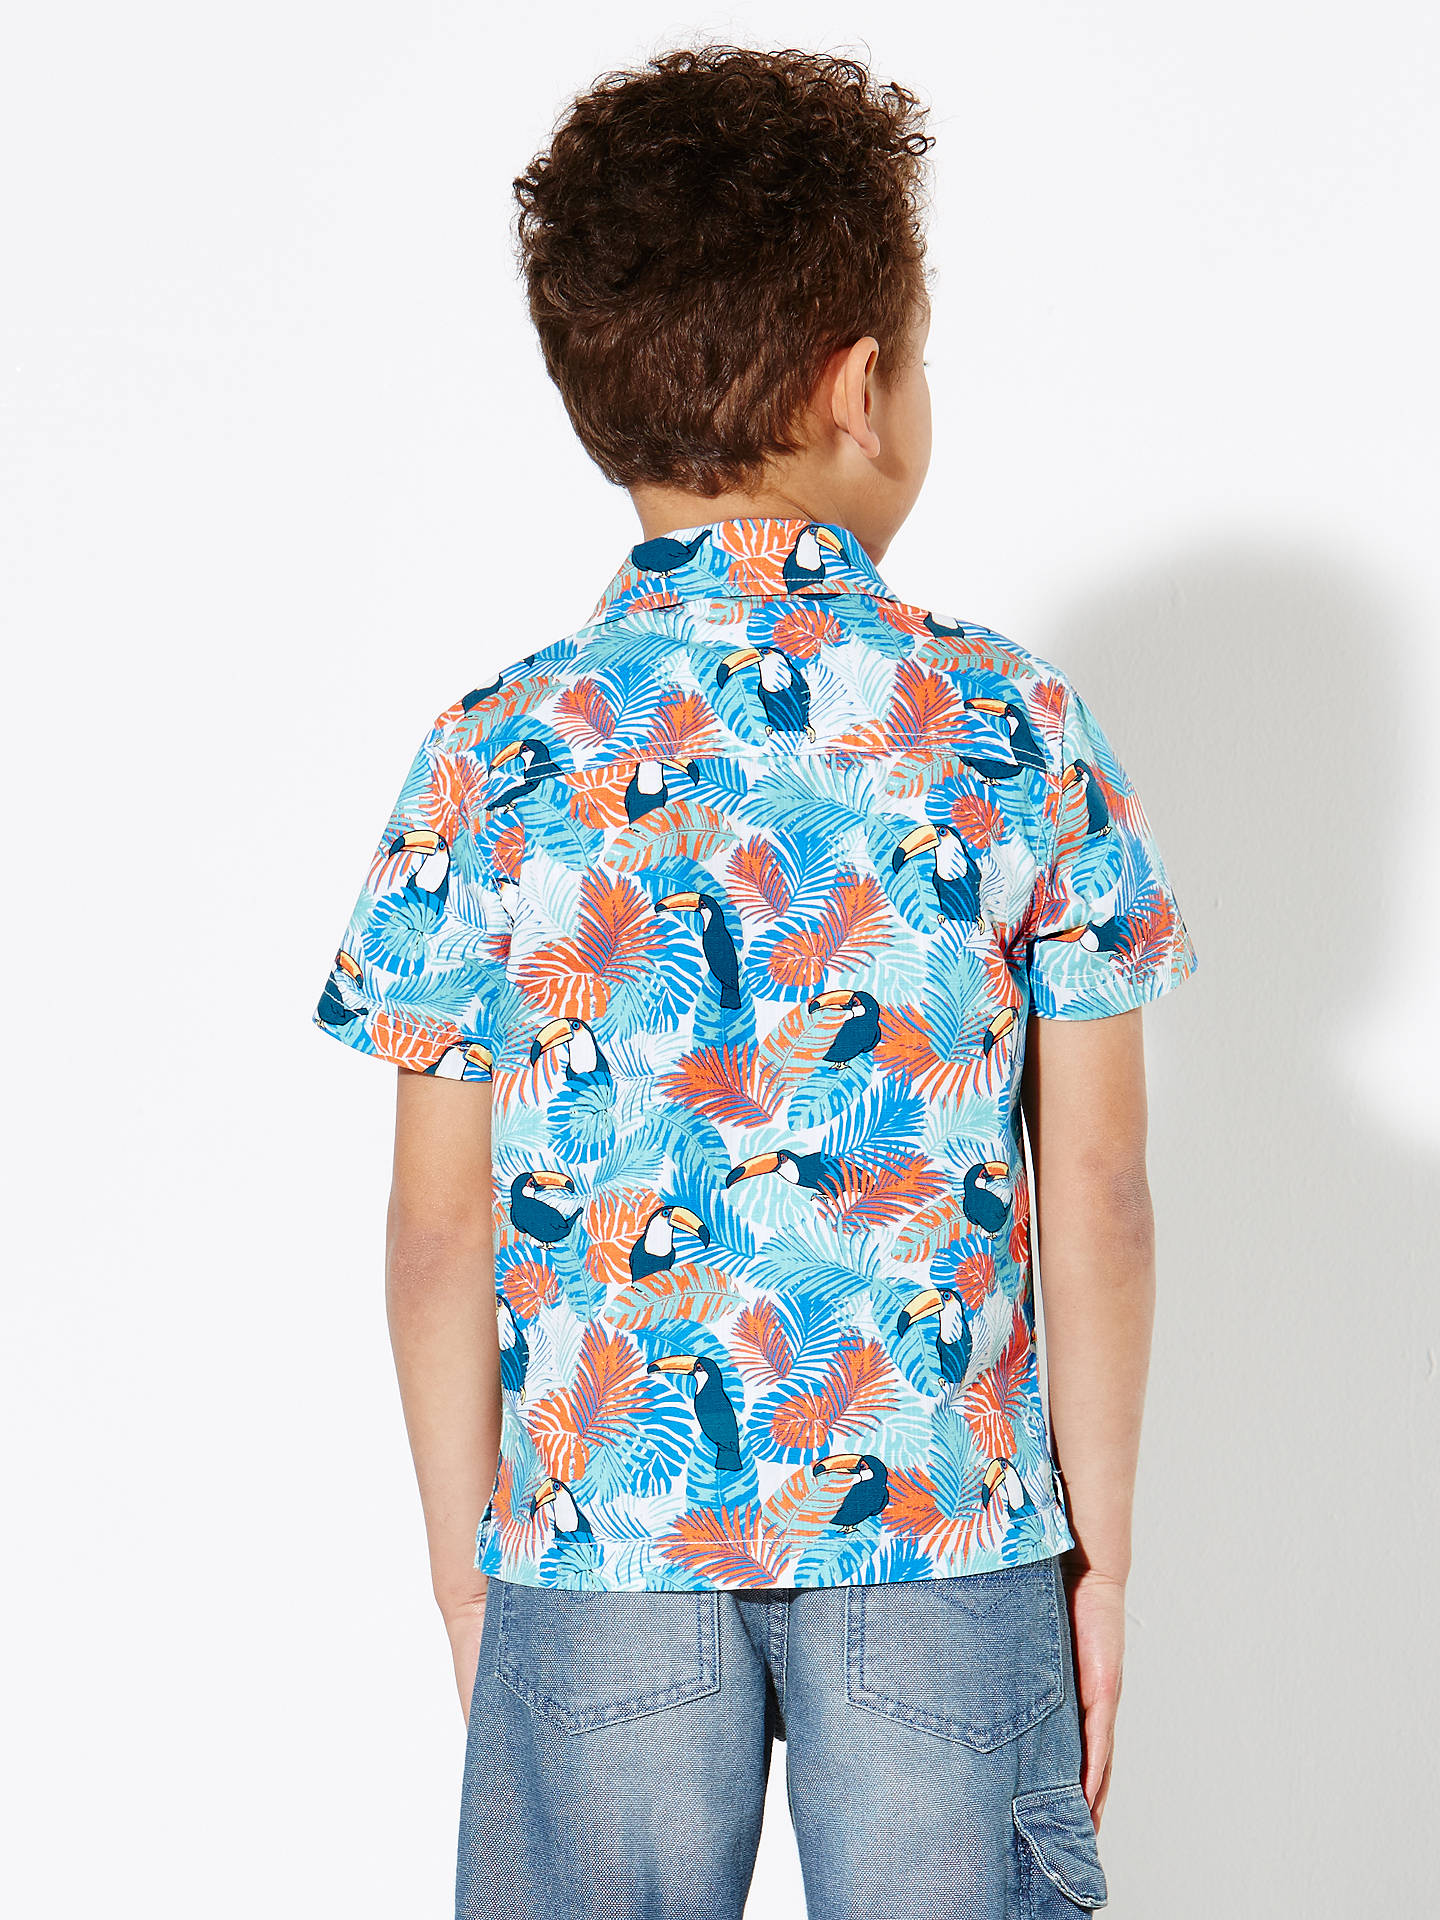 1e342d57b ... Buy John Lewis Boys' Toucan Print Shirt, Multi, 2 years Online at  johnlewis ...